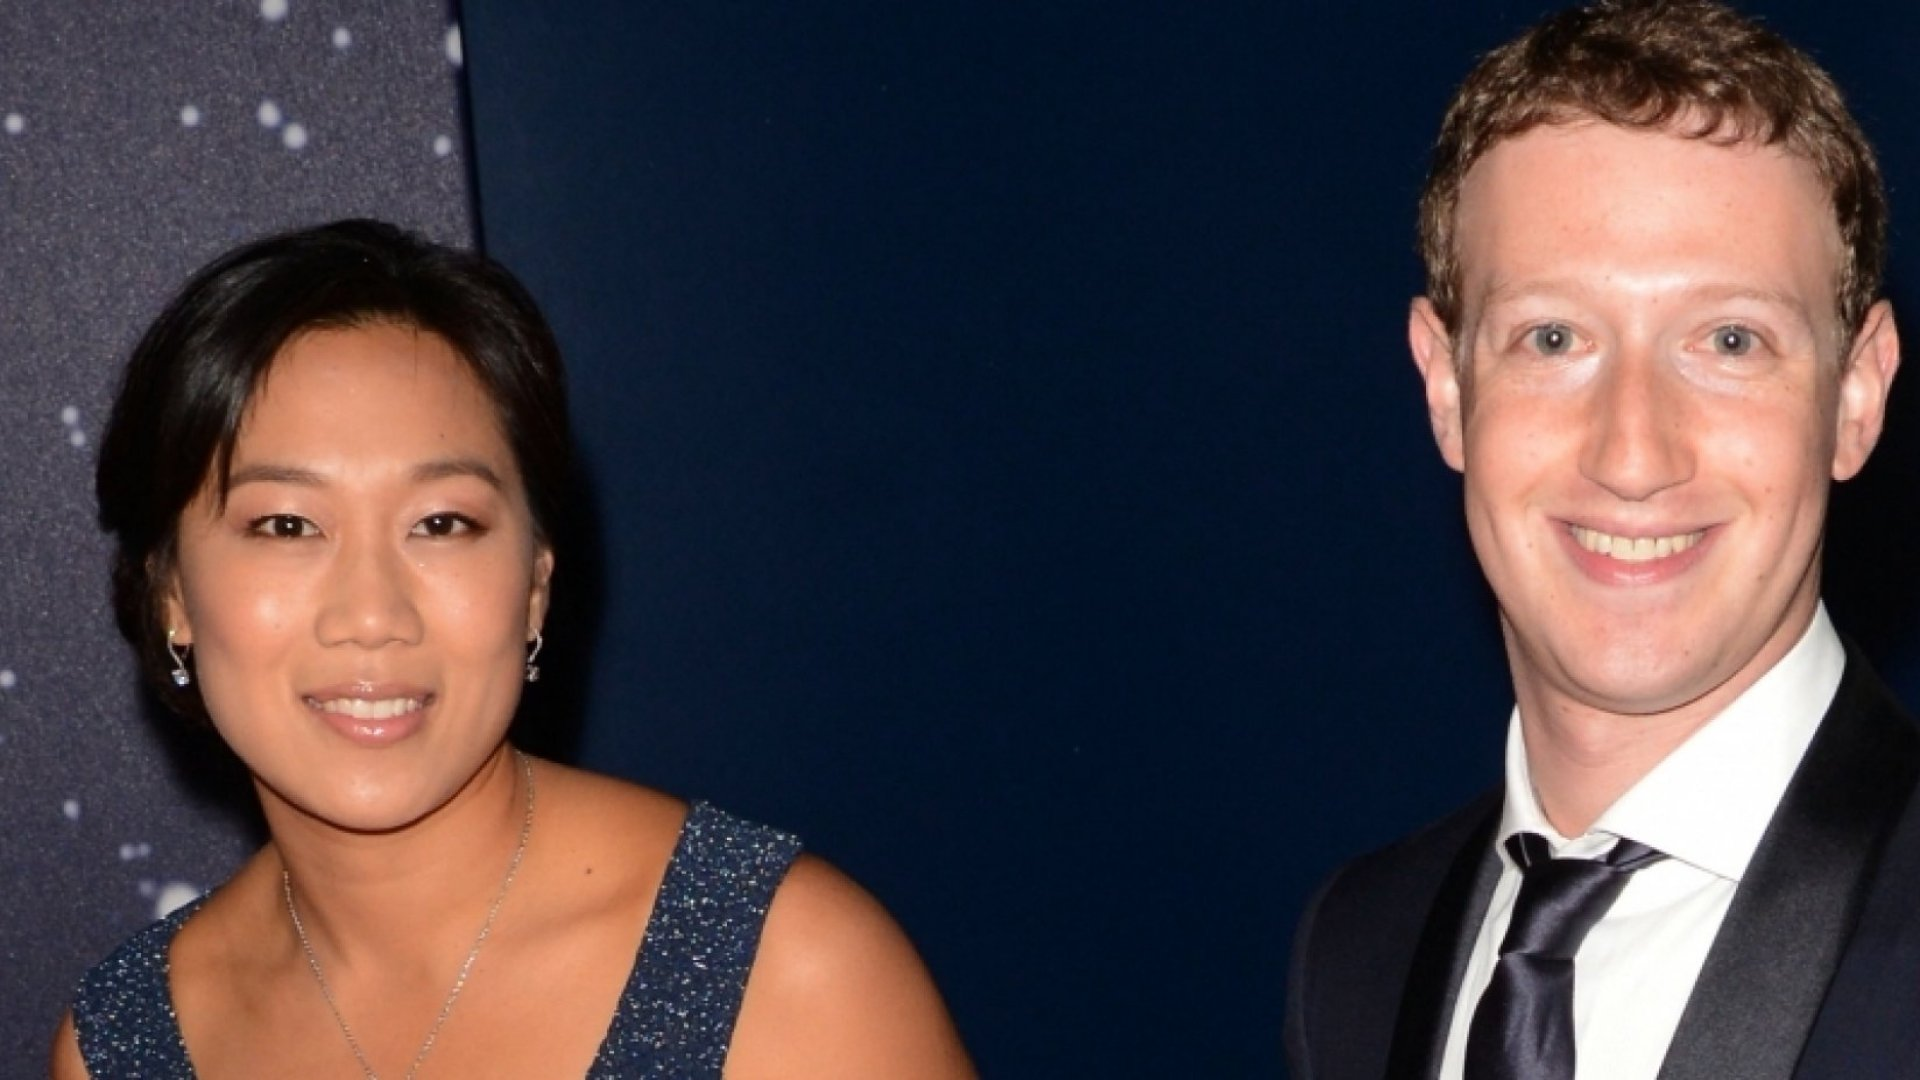 The Most Important Lesson From Mark Zuckerberg and Priscilla Chan's Letter to Their Daughter